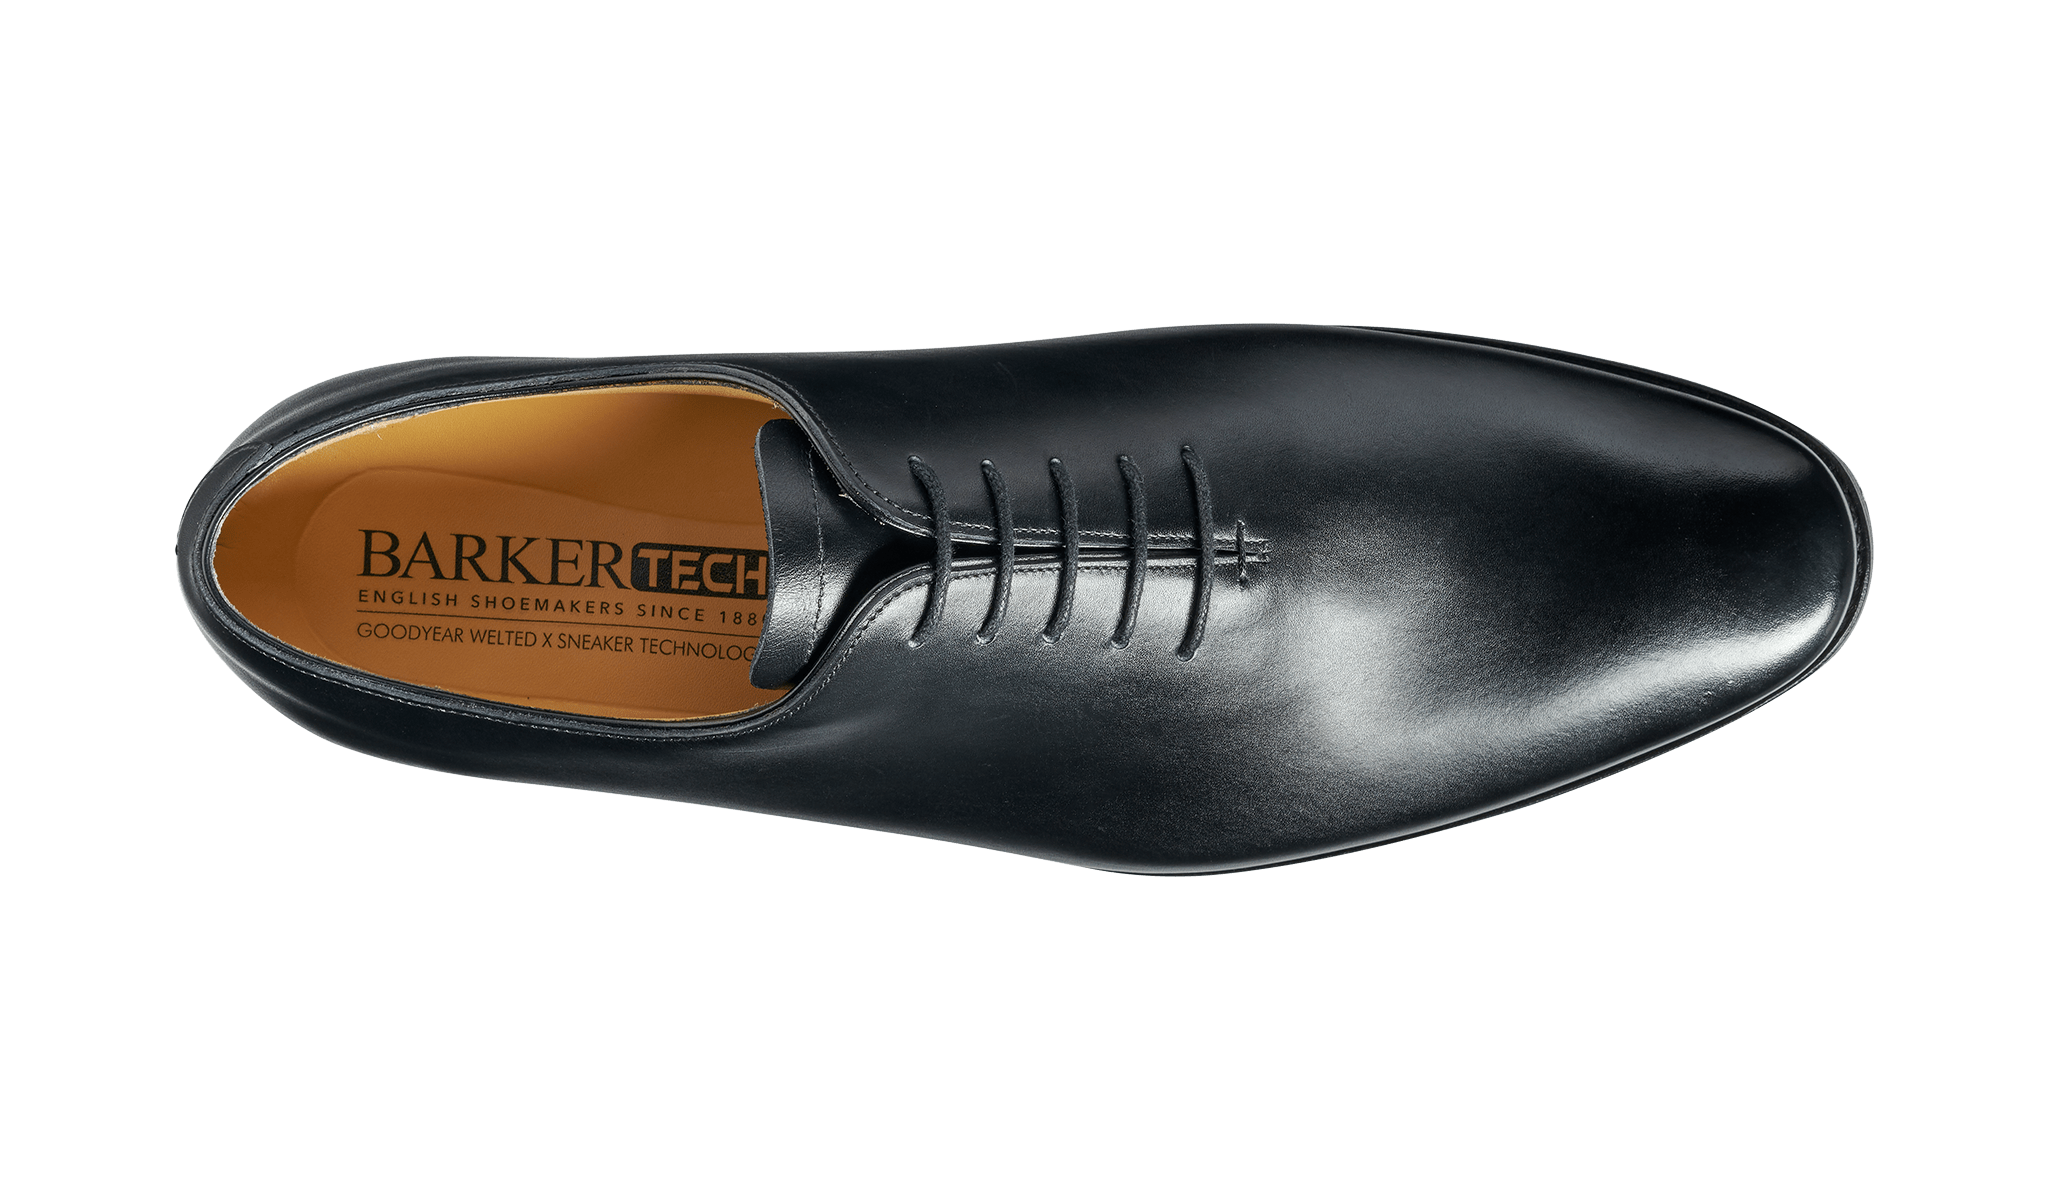 Barker Men's Armstrong Leather Oxford Shoes 4501/16